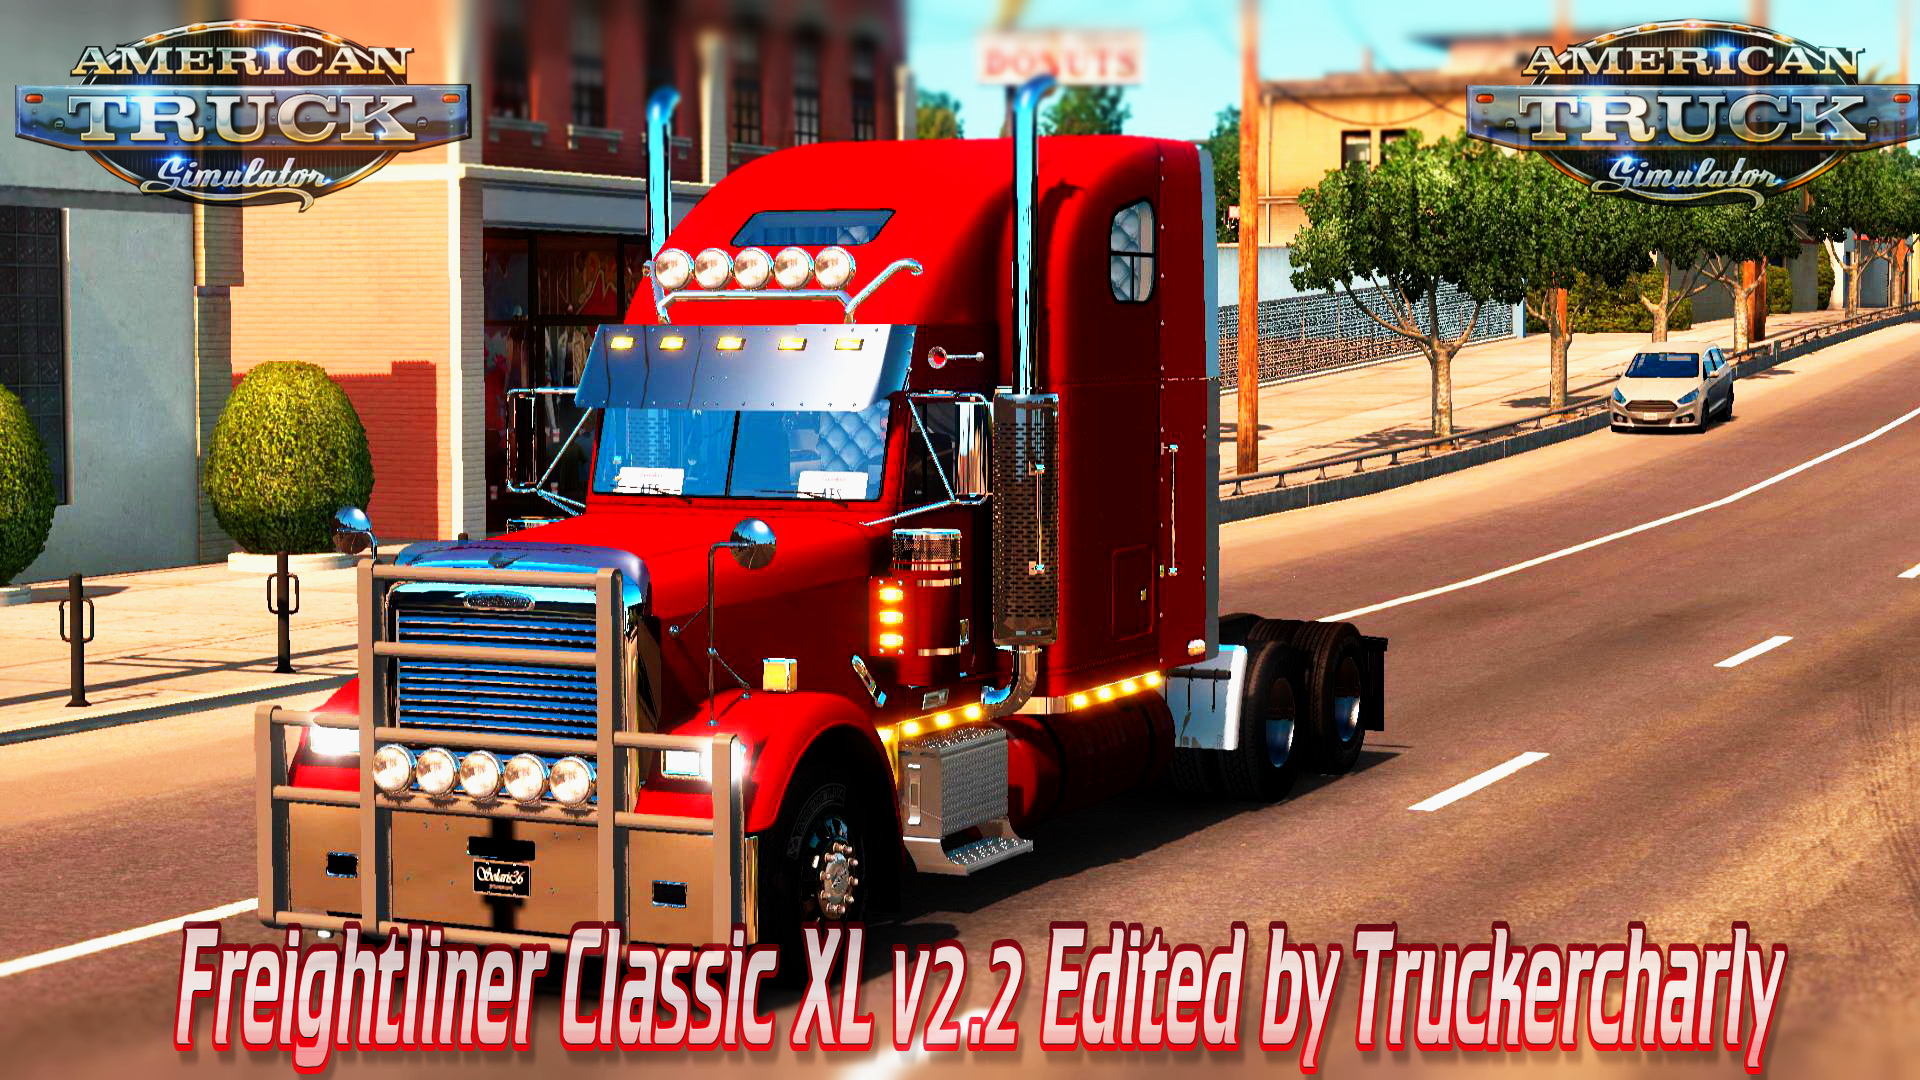 Freightliner Classic XL v2.2 Edited by Truckercharly